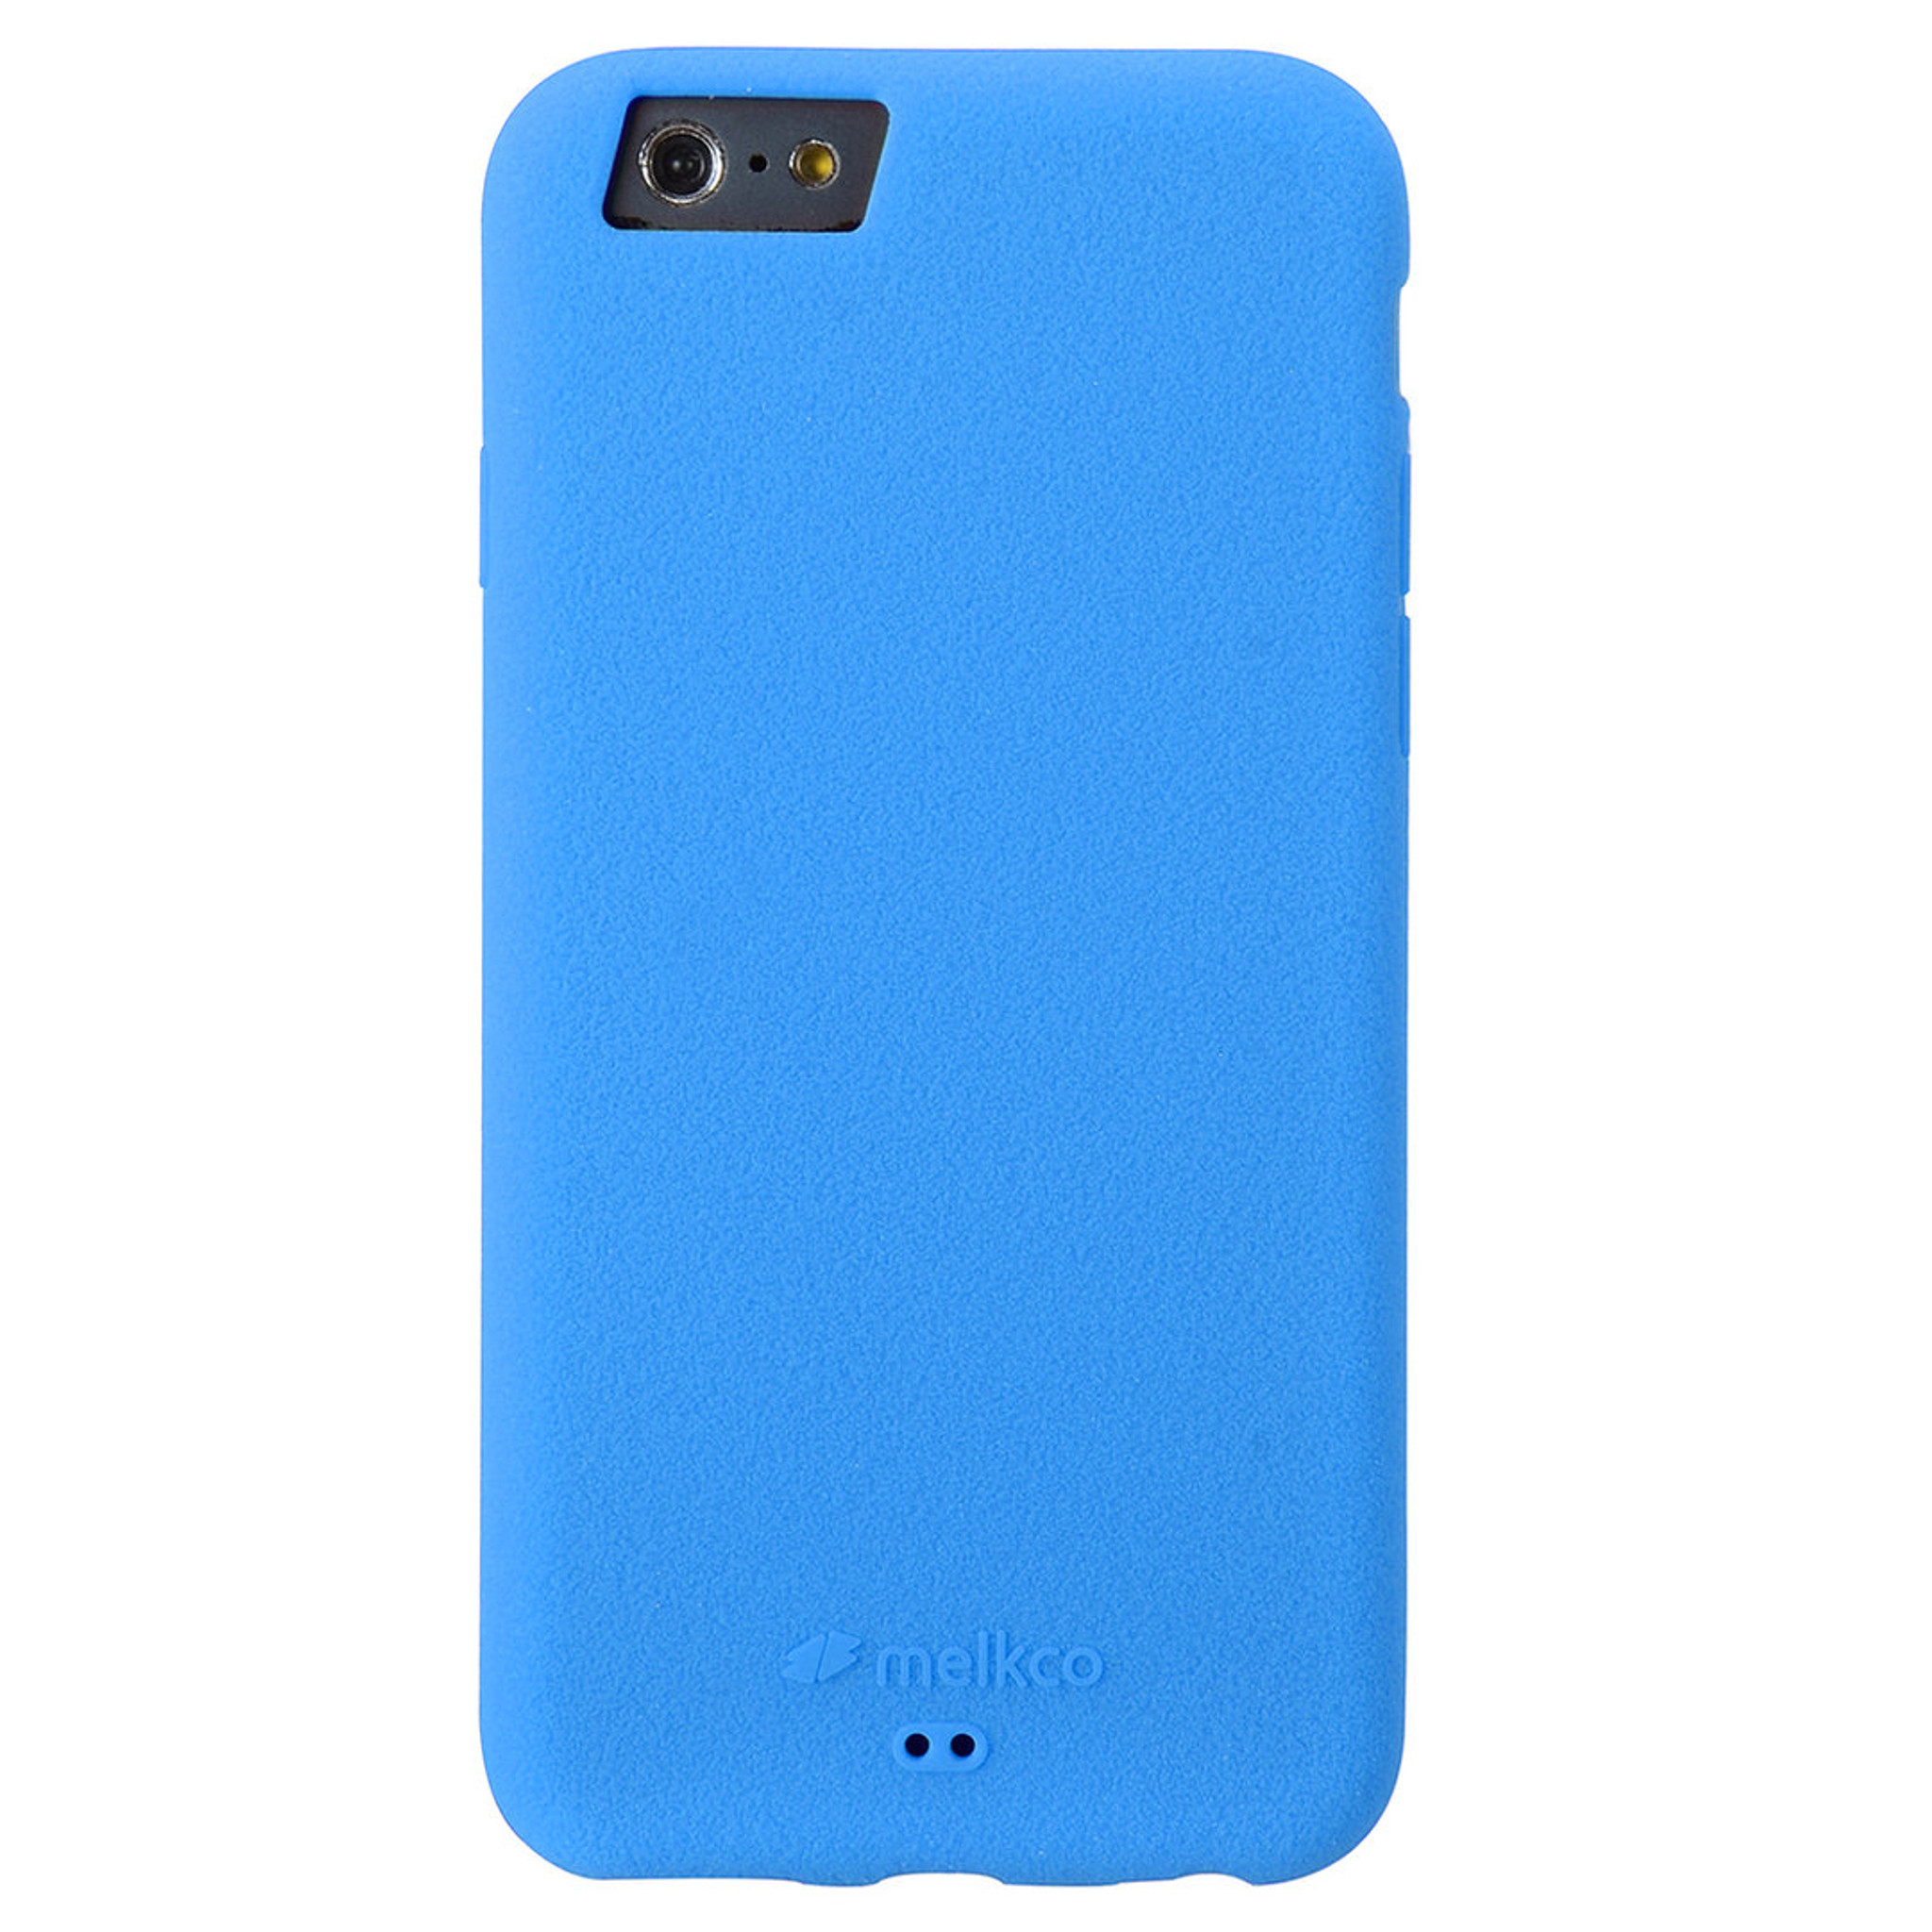 new concept c0ef8 888f2 Melkco Silikonovy Silicone Case for Apple iPhone 6 / 6s - Blue